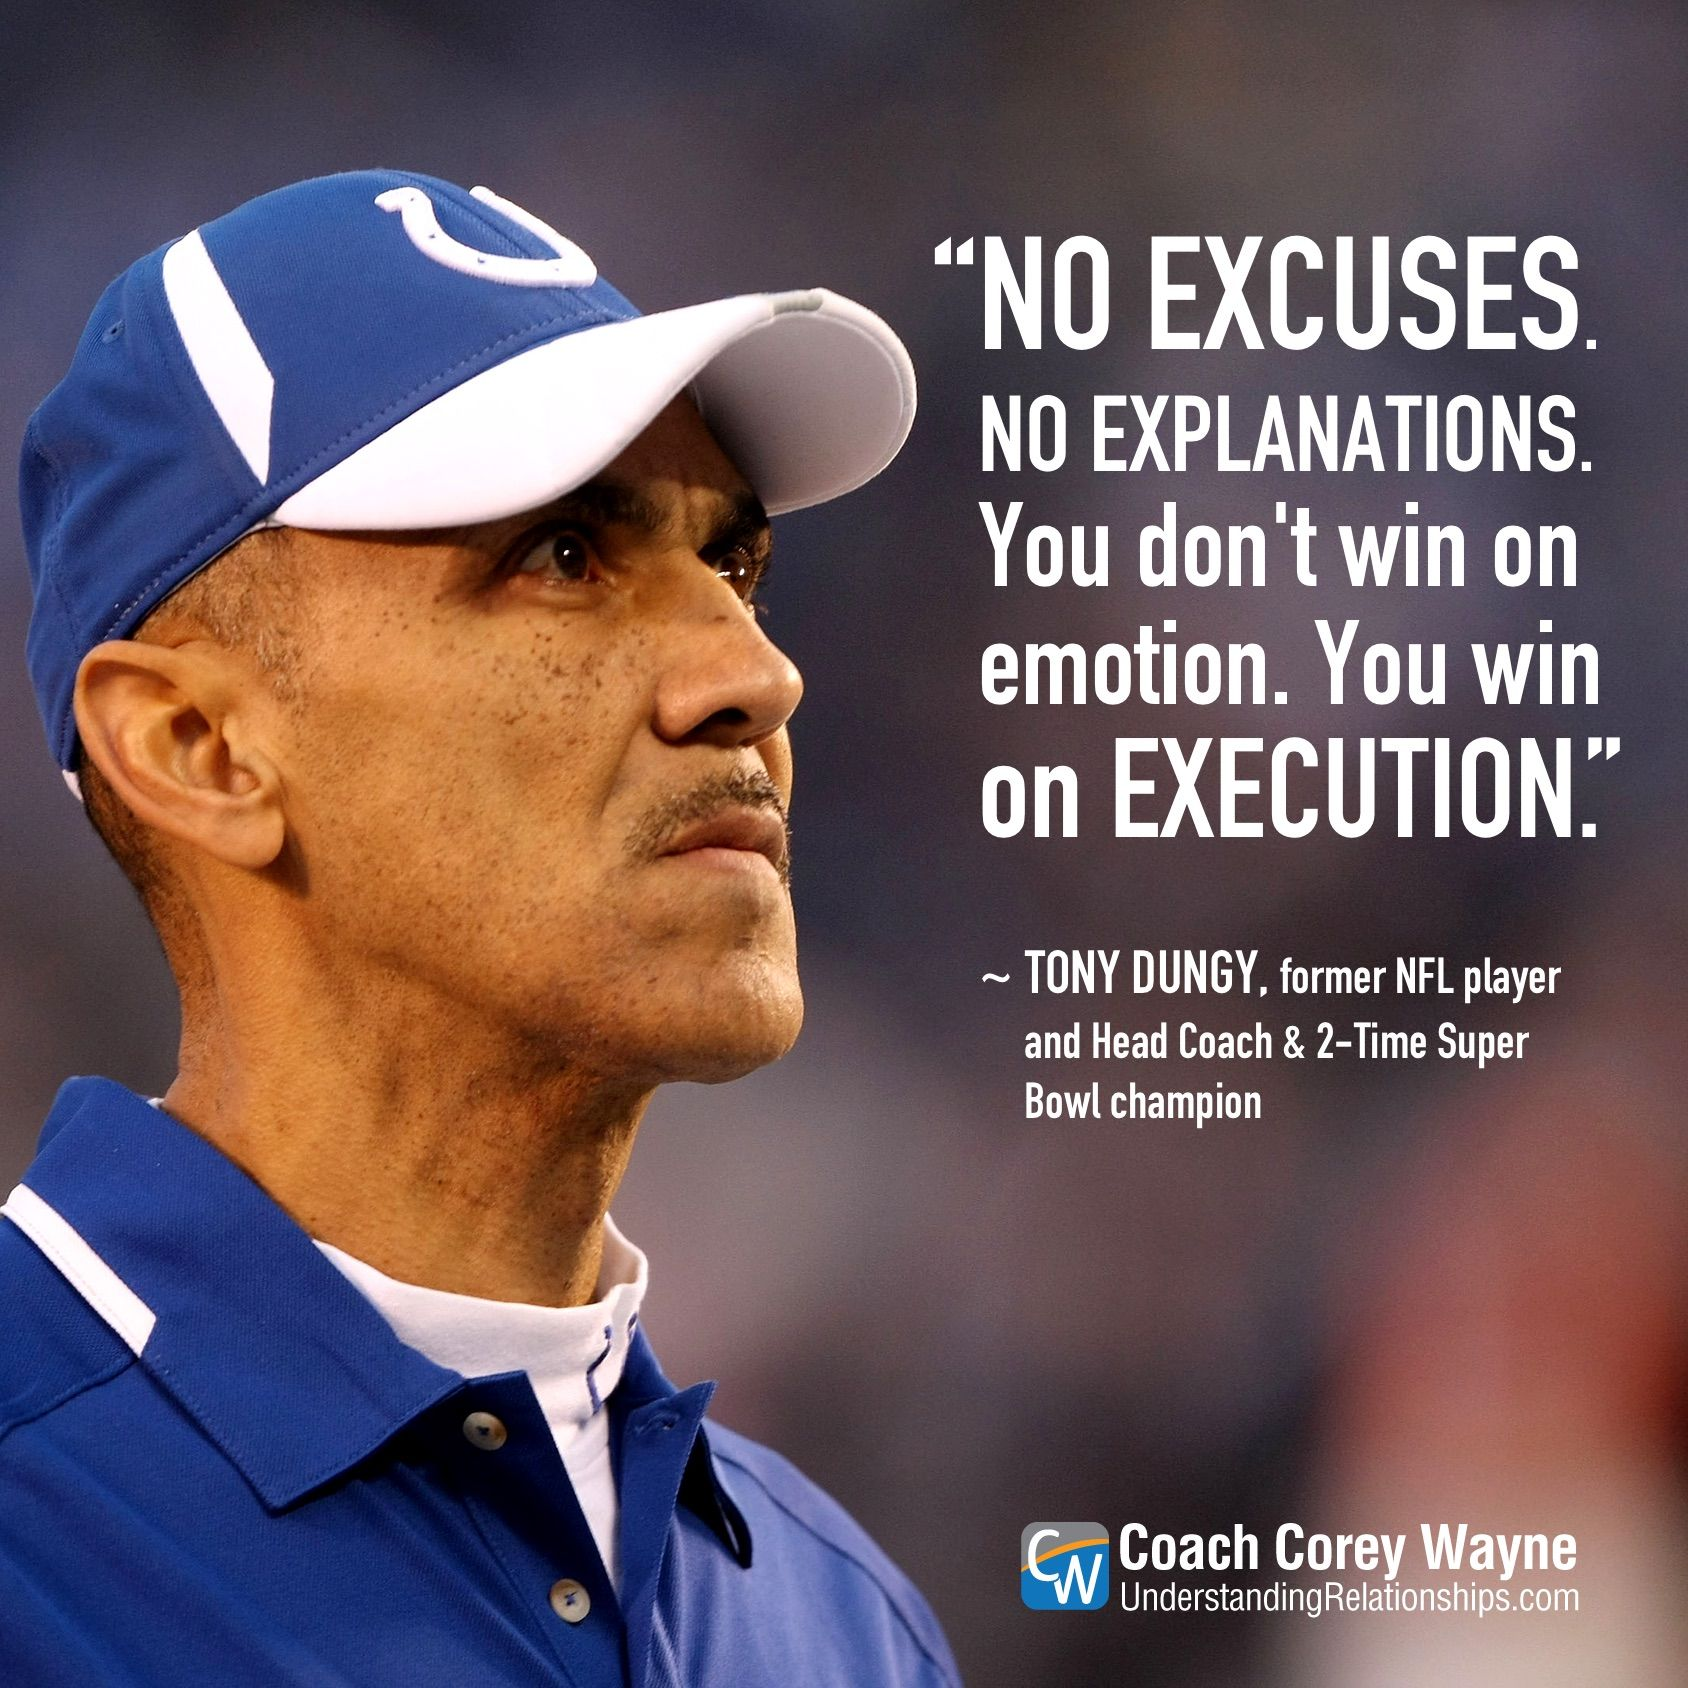 """3932774c0  tonydungy  nfl  football  coaching  leadership  success  execution   winning  coachcoreywayne  greatquotes Photo by Stephen Dunn Getty Images  """"No excuses."""